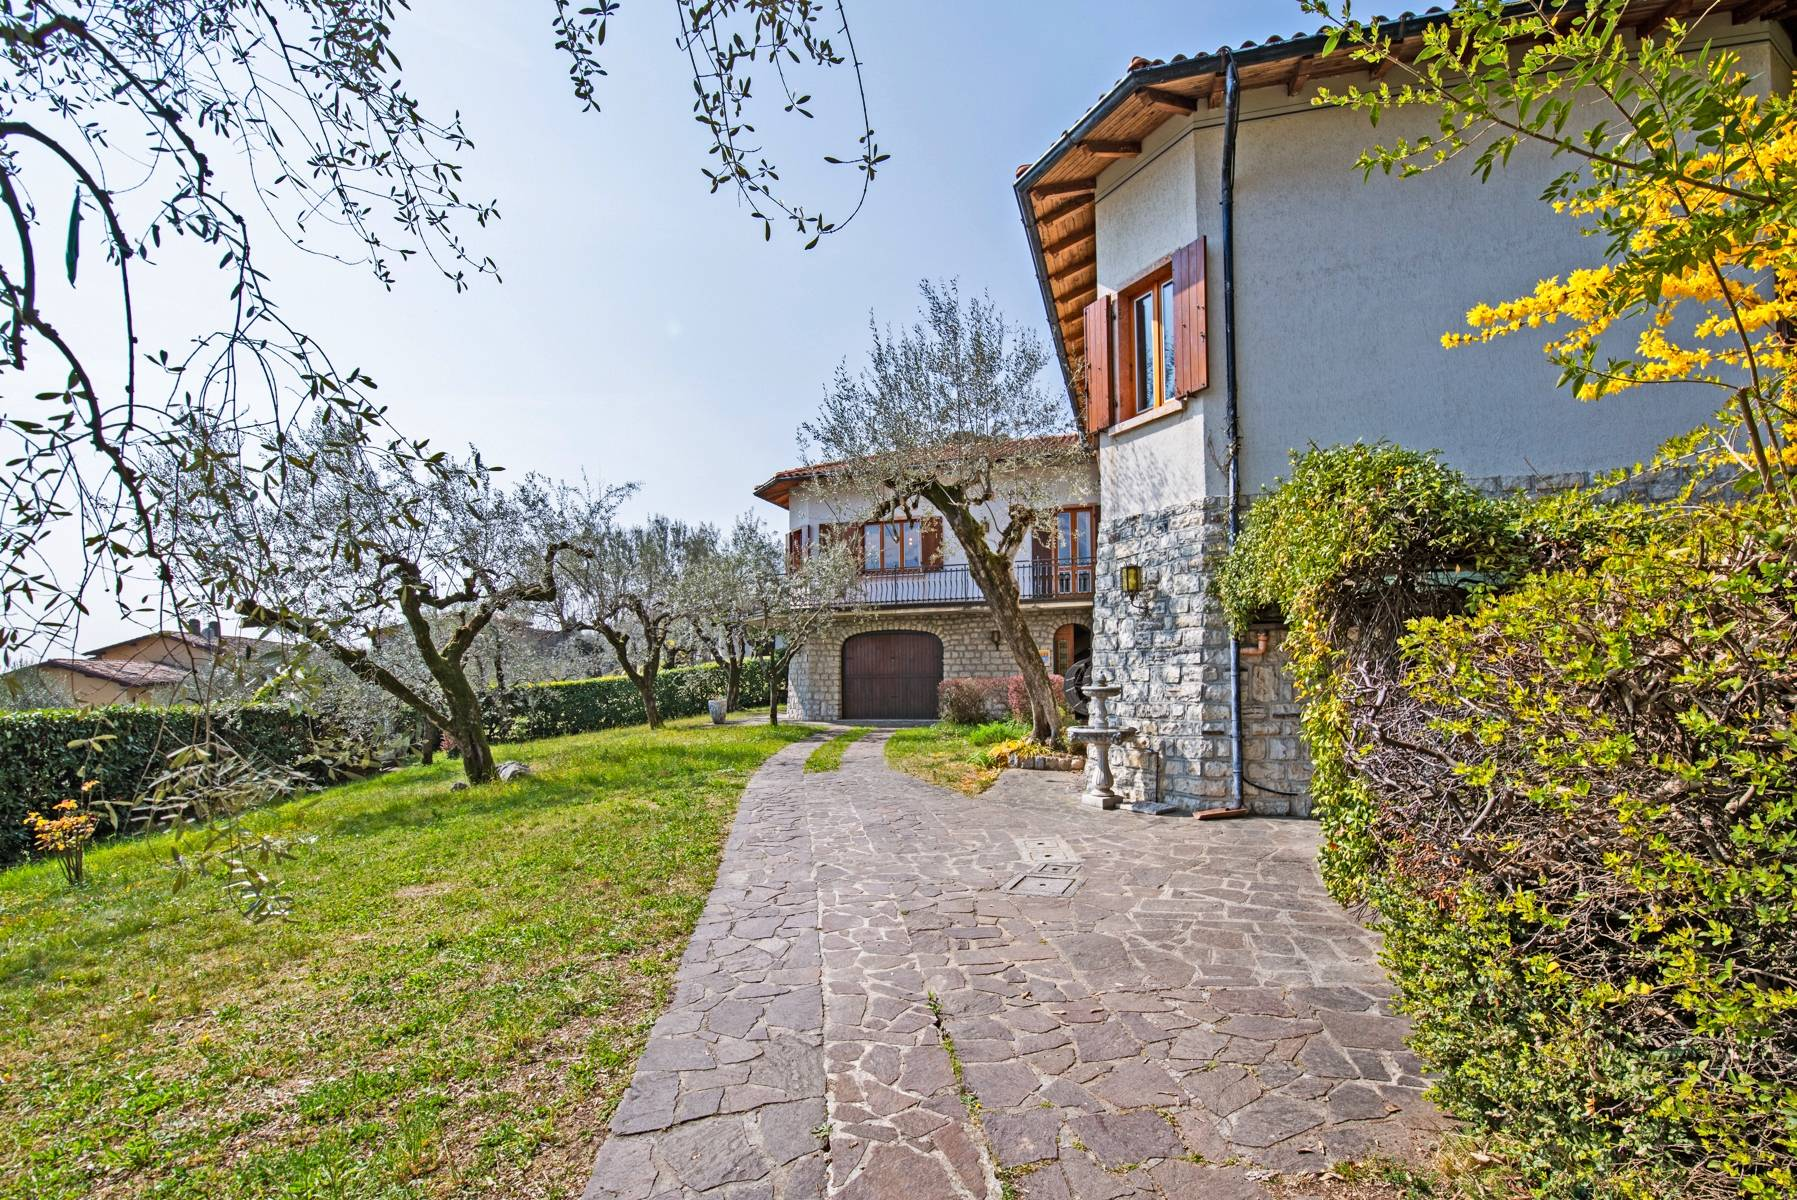 Villa with lake view in Gargnano surrounded by olive trees - 32